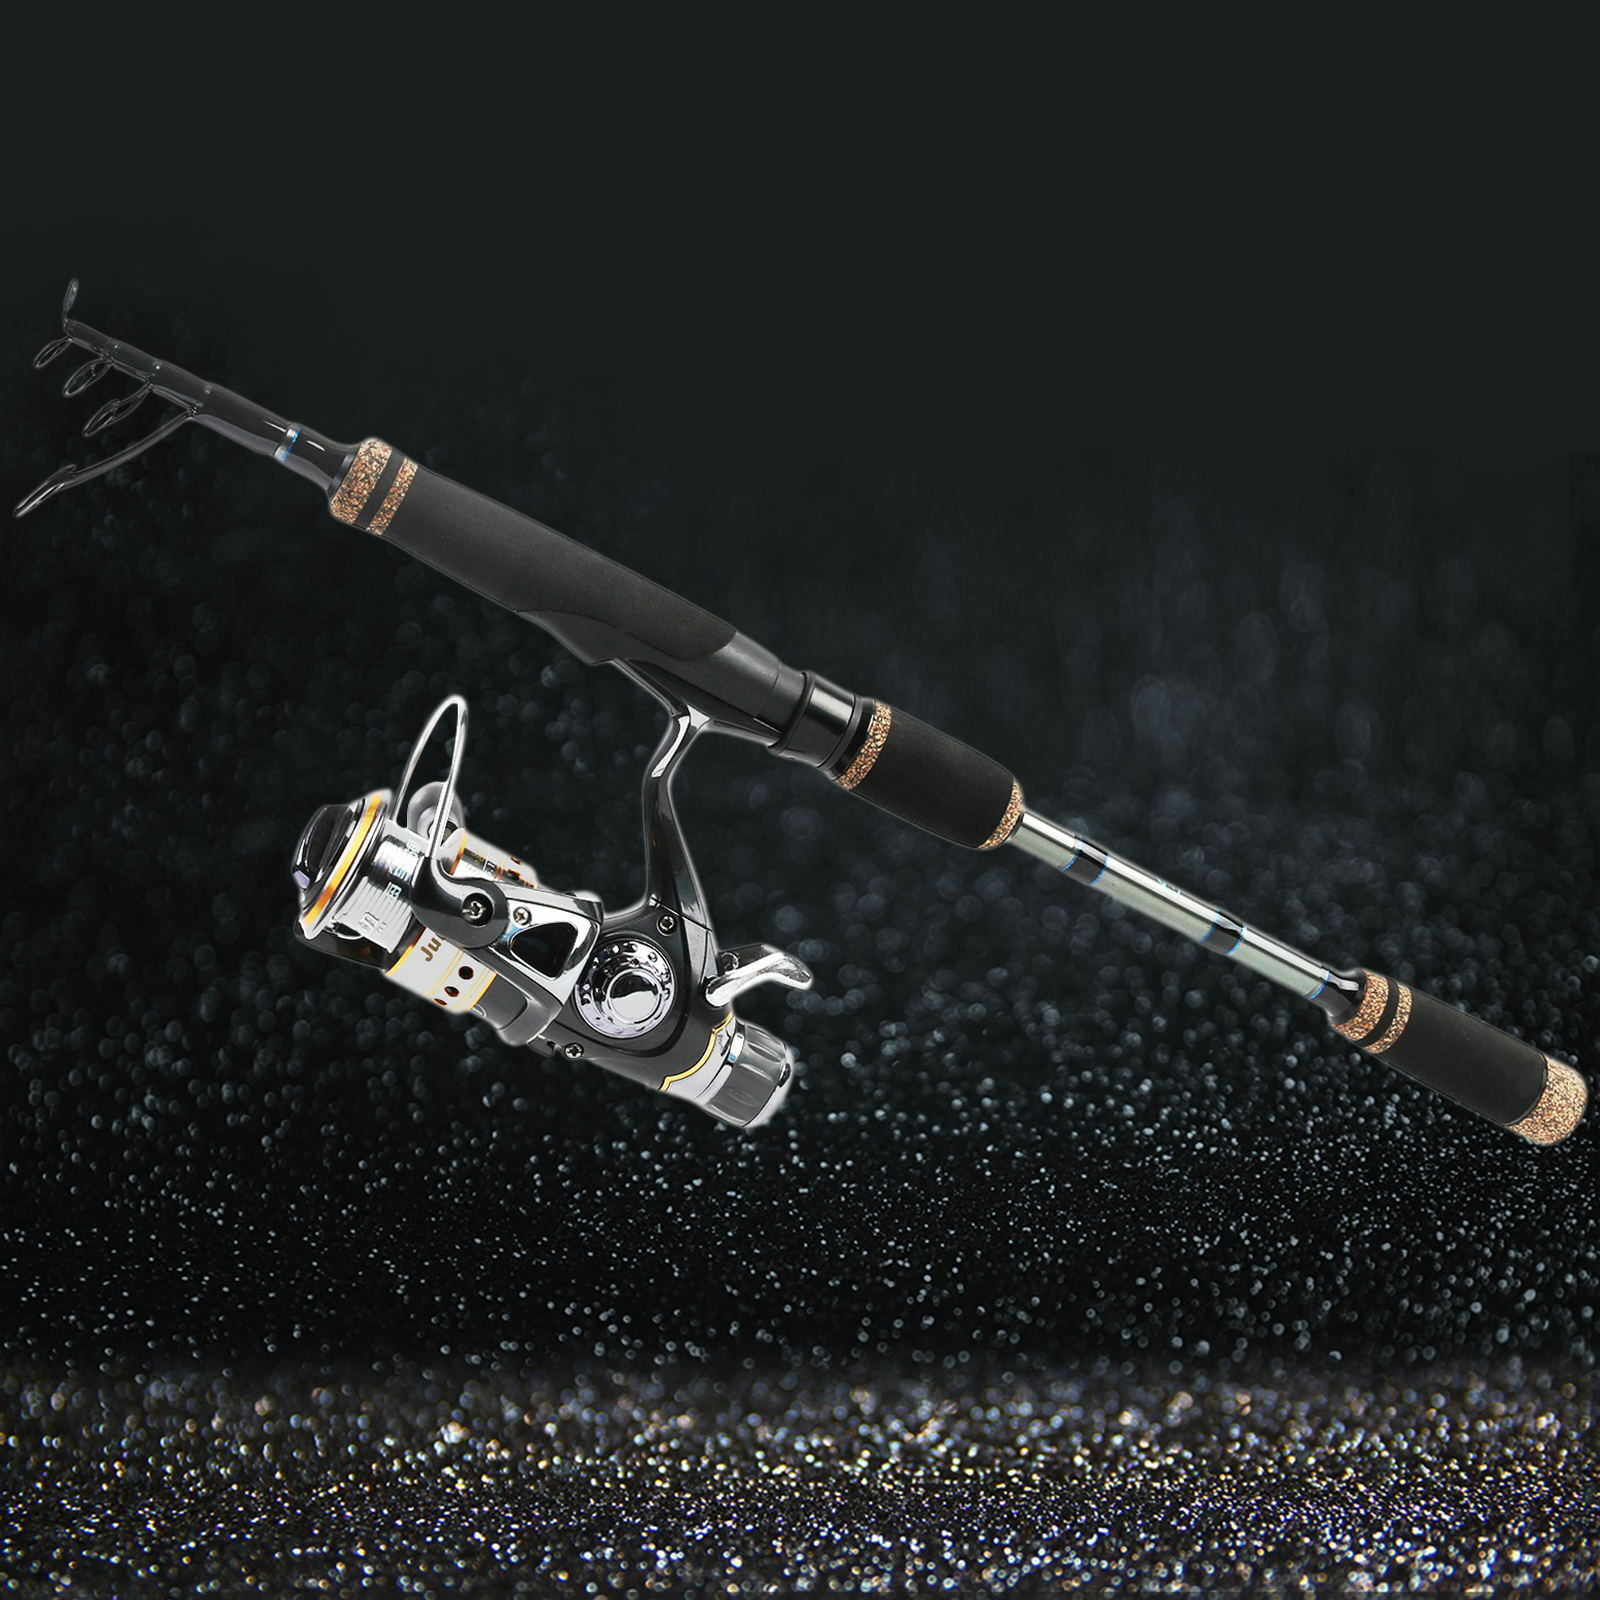 8/' Spinning Fishing Rods 6/'8/'/' 9/' Bass Trout Travel Telescopic Pole 7/'